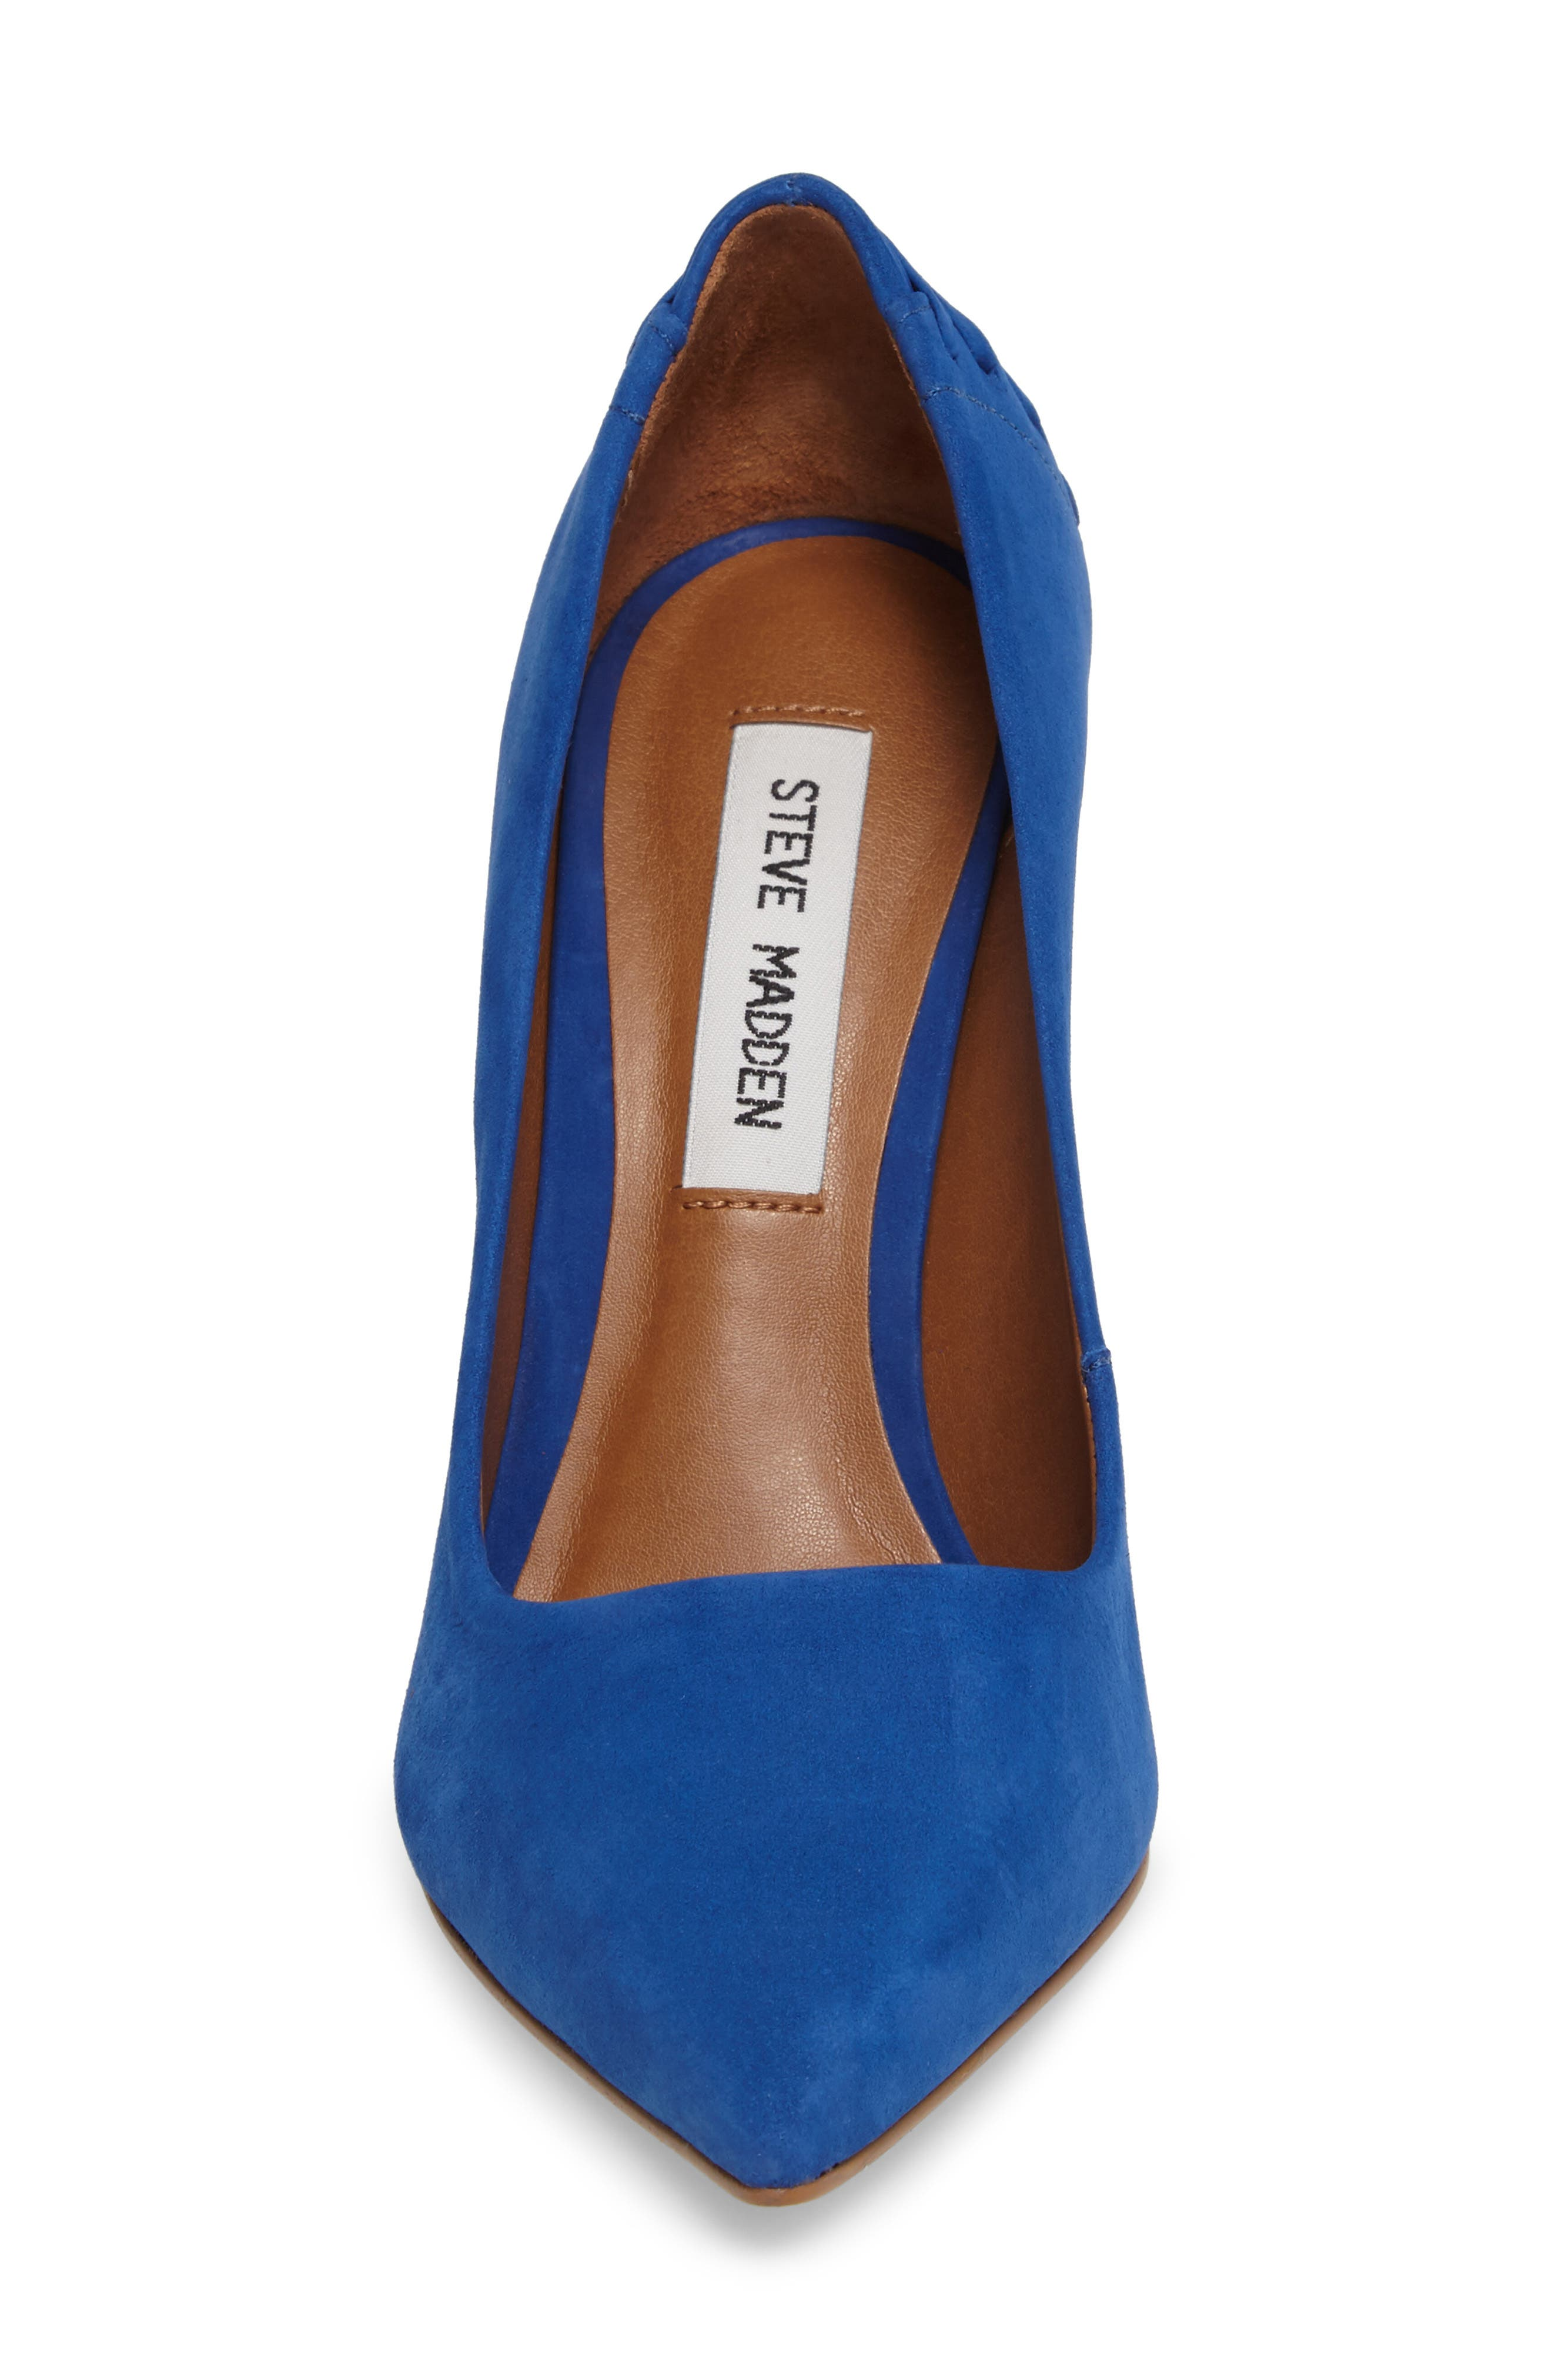 Paiton Laced Heel Pump,                             Alternate thumbnail 4, color,                             Blue Nubuck